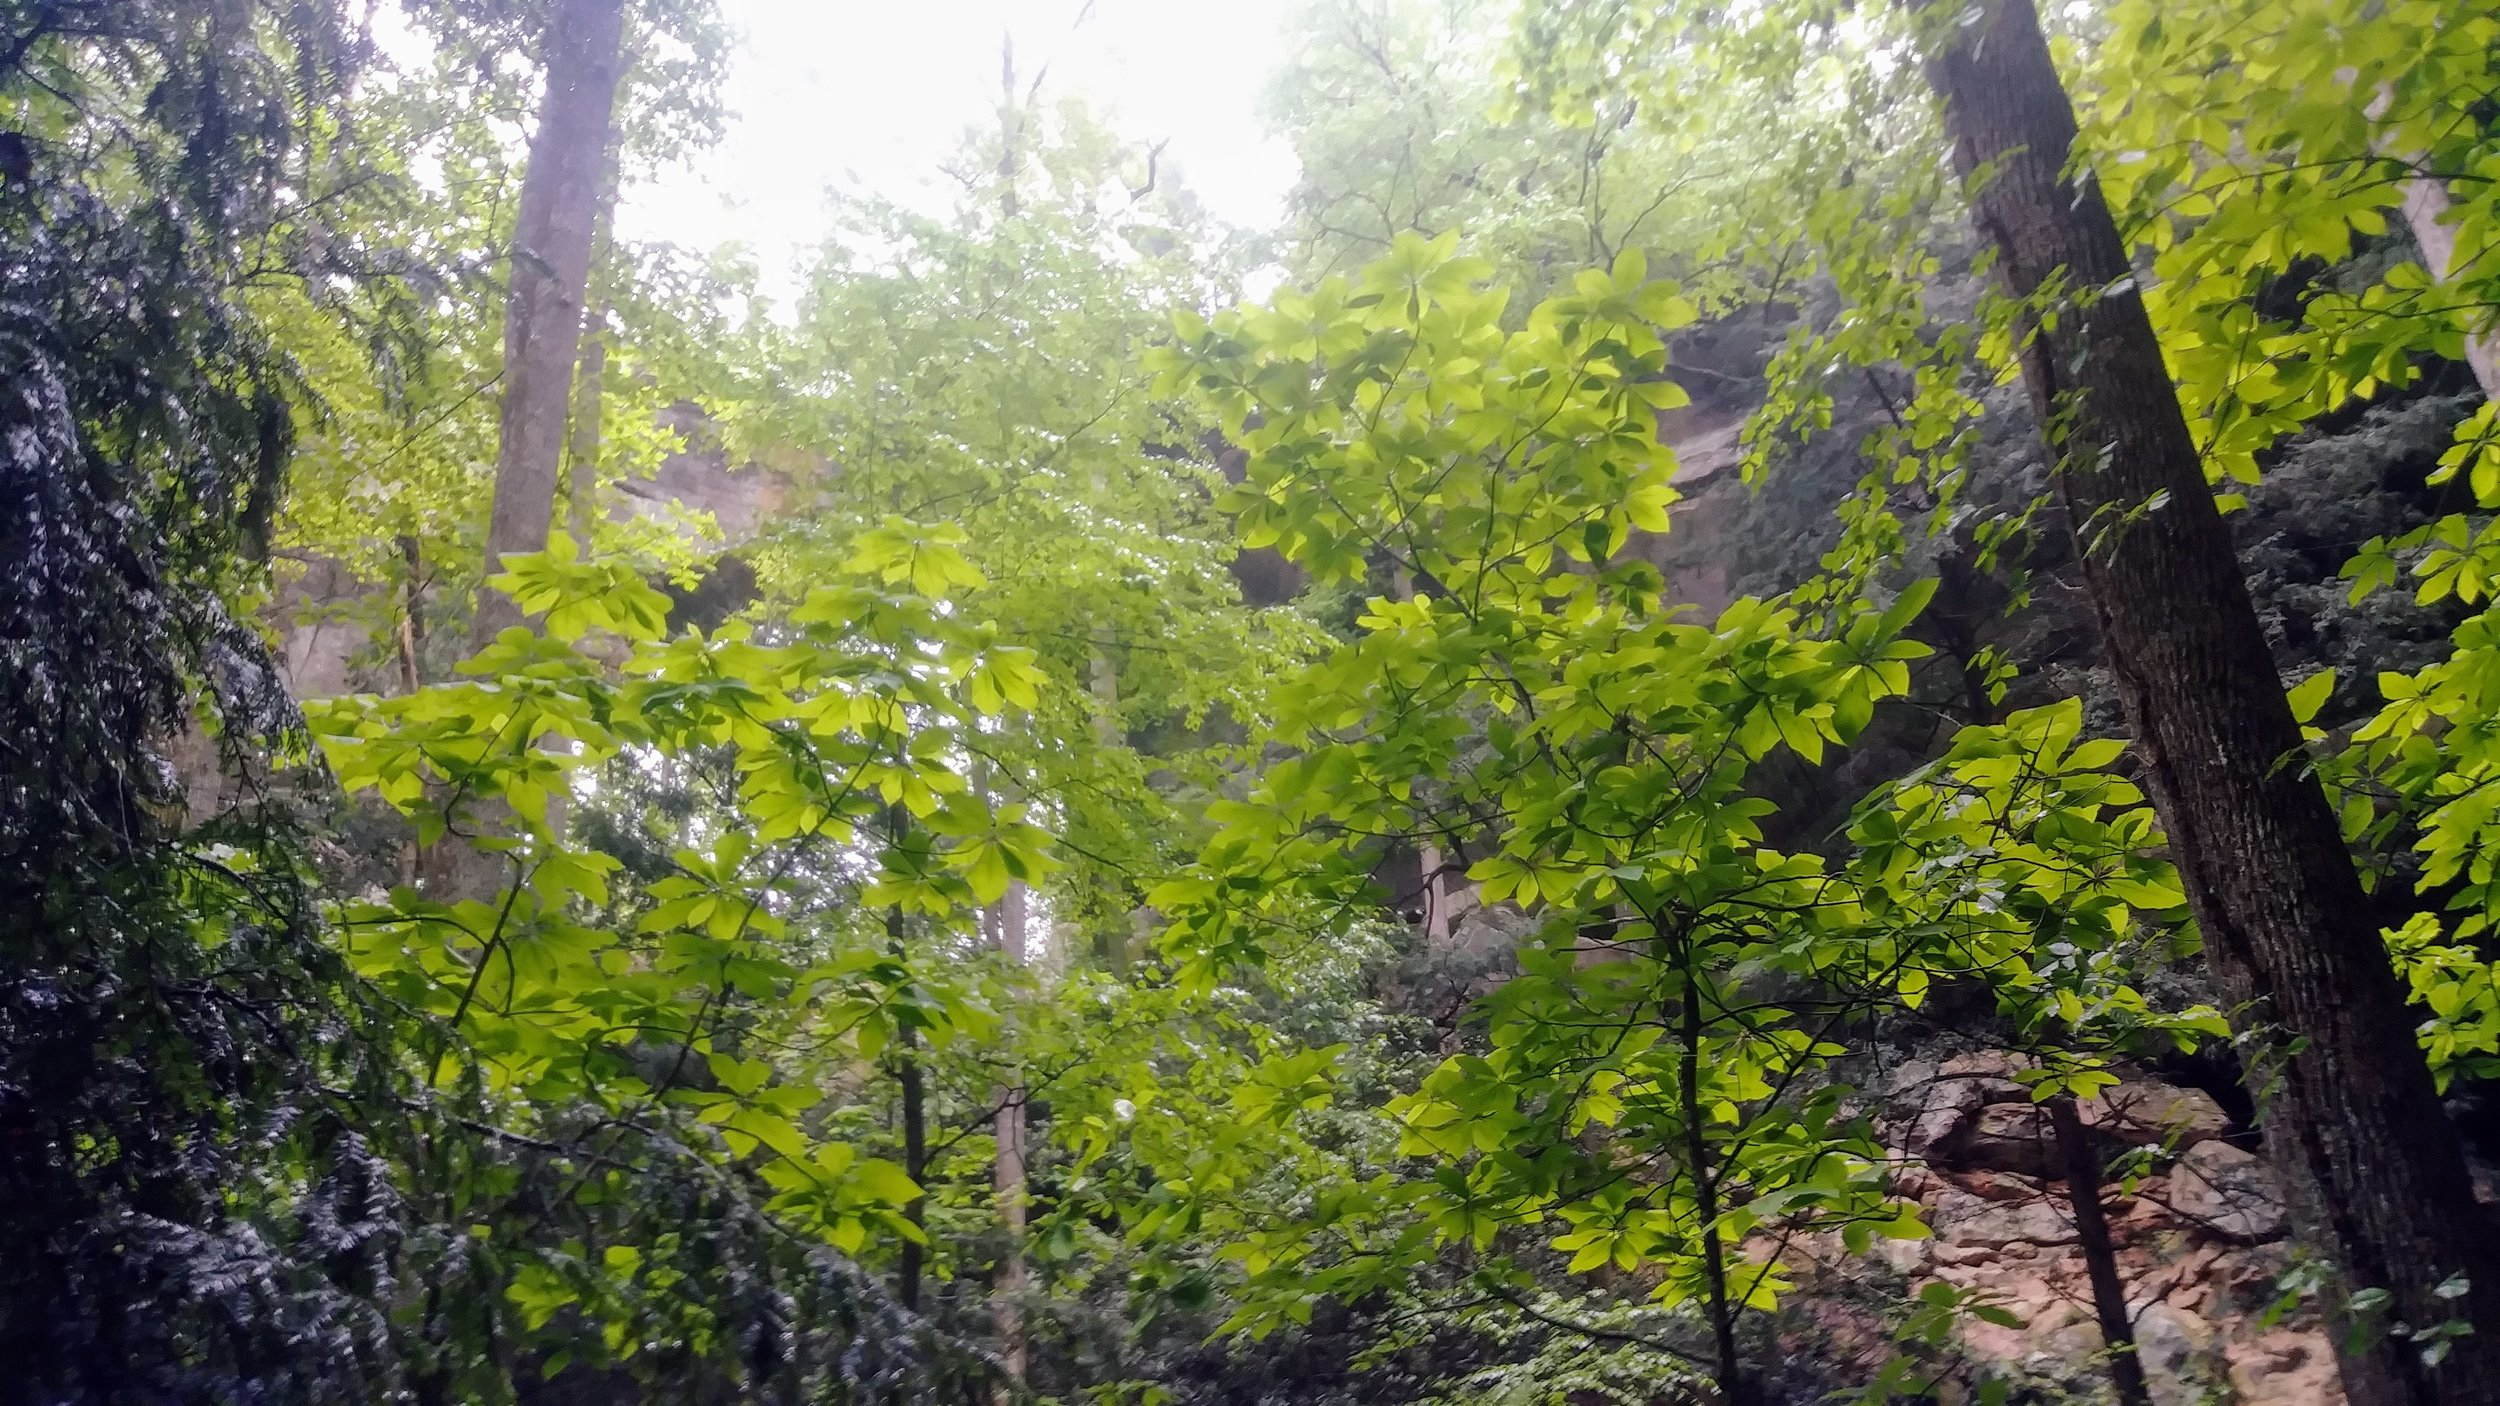 Looking up at Gray's Arch through the trees in Red River Gorge